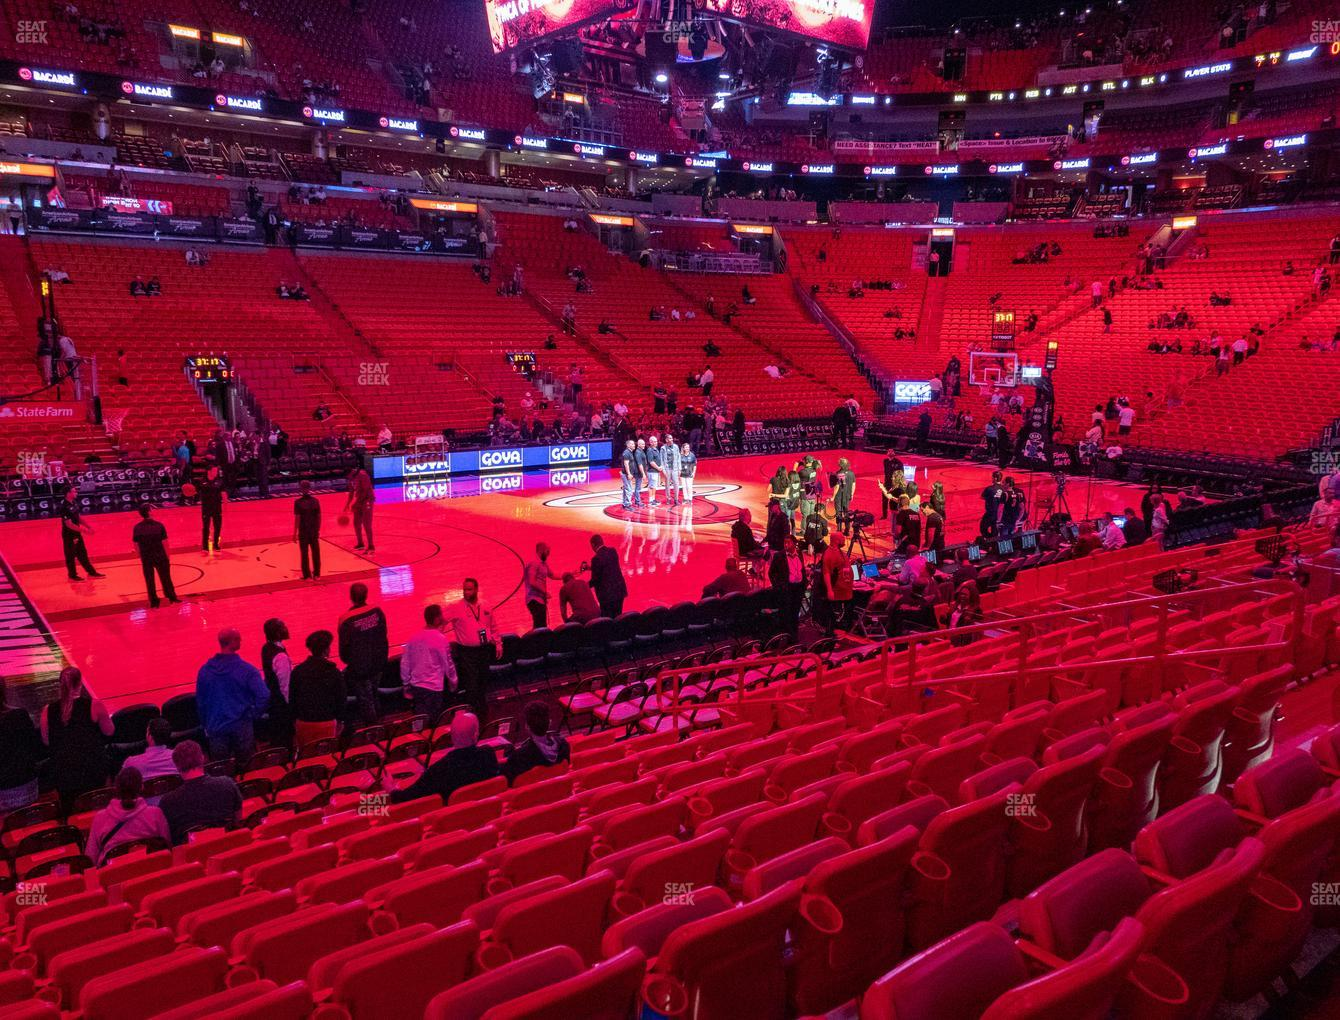 american airlines arena section 120 seat views | seatgeek